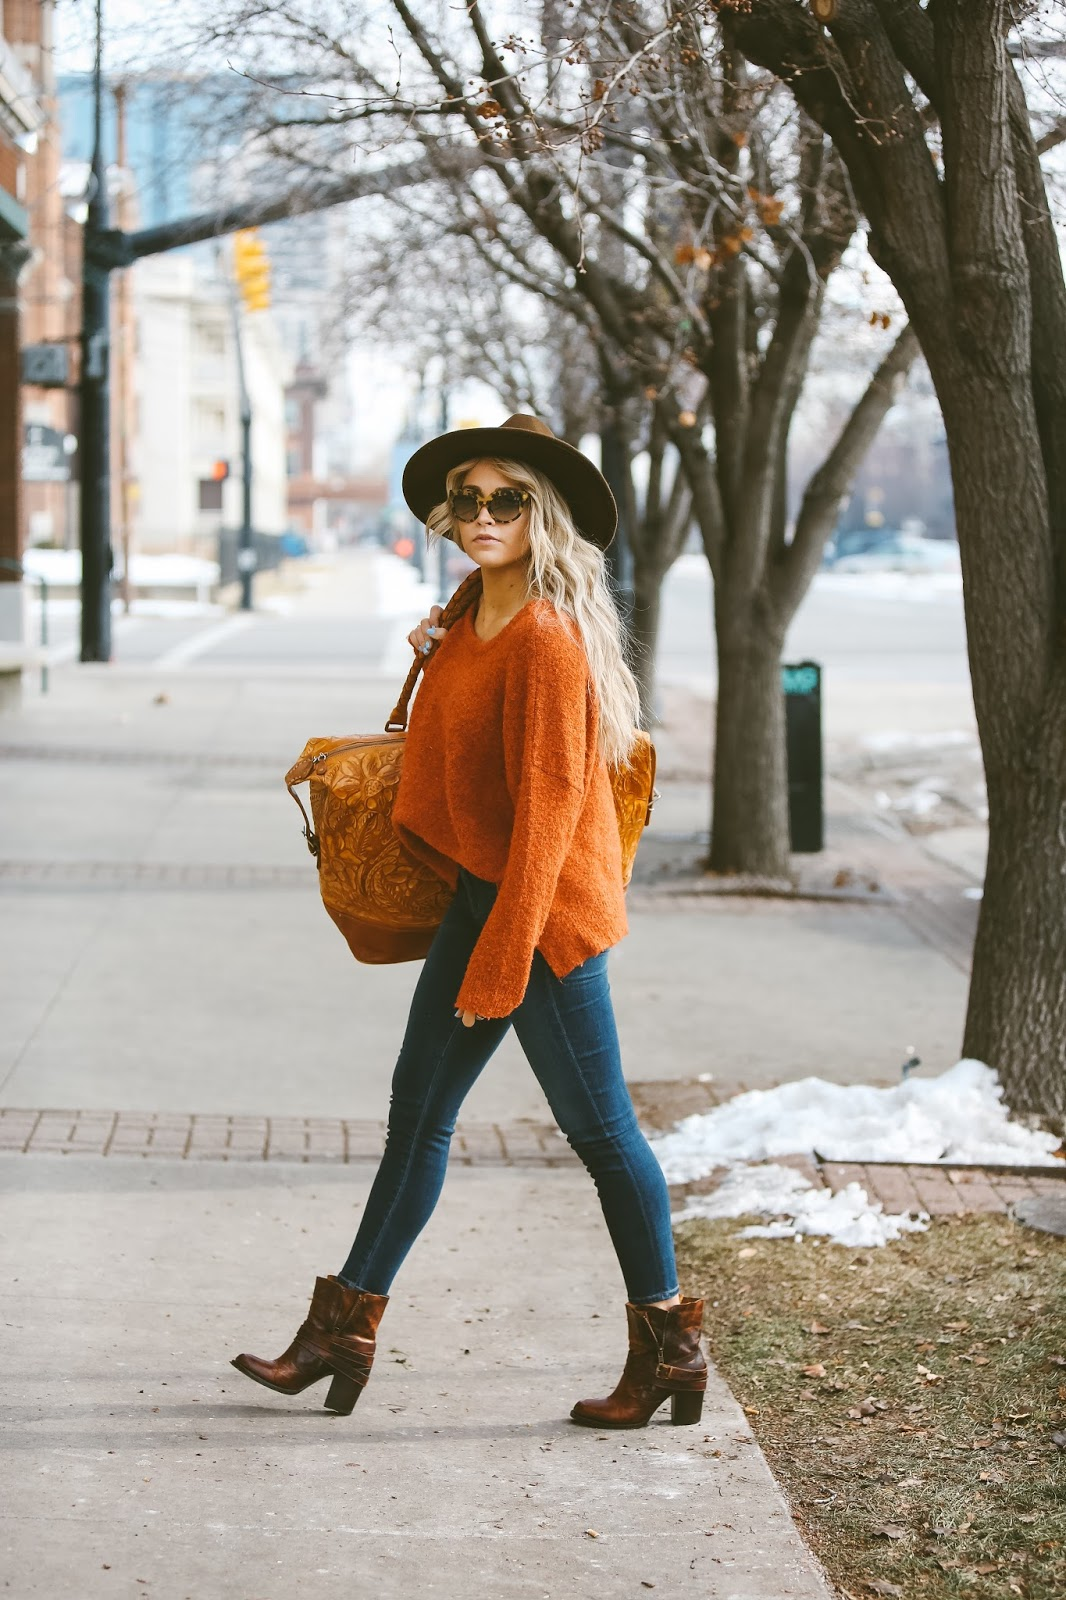 Wear a bright statement knitwear piece such as this orange sweater with casual denim jeans to get the stylish winter vibes rocked here by Cara Loren Van Brocklin. Add a wide brimmed fedora if you want that classic retro feel. Sweater: Nordstrom, Jeans: ShopBop, Shoes: Steve Madden.